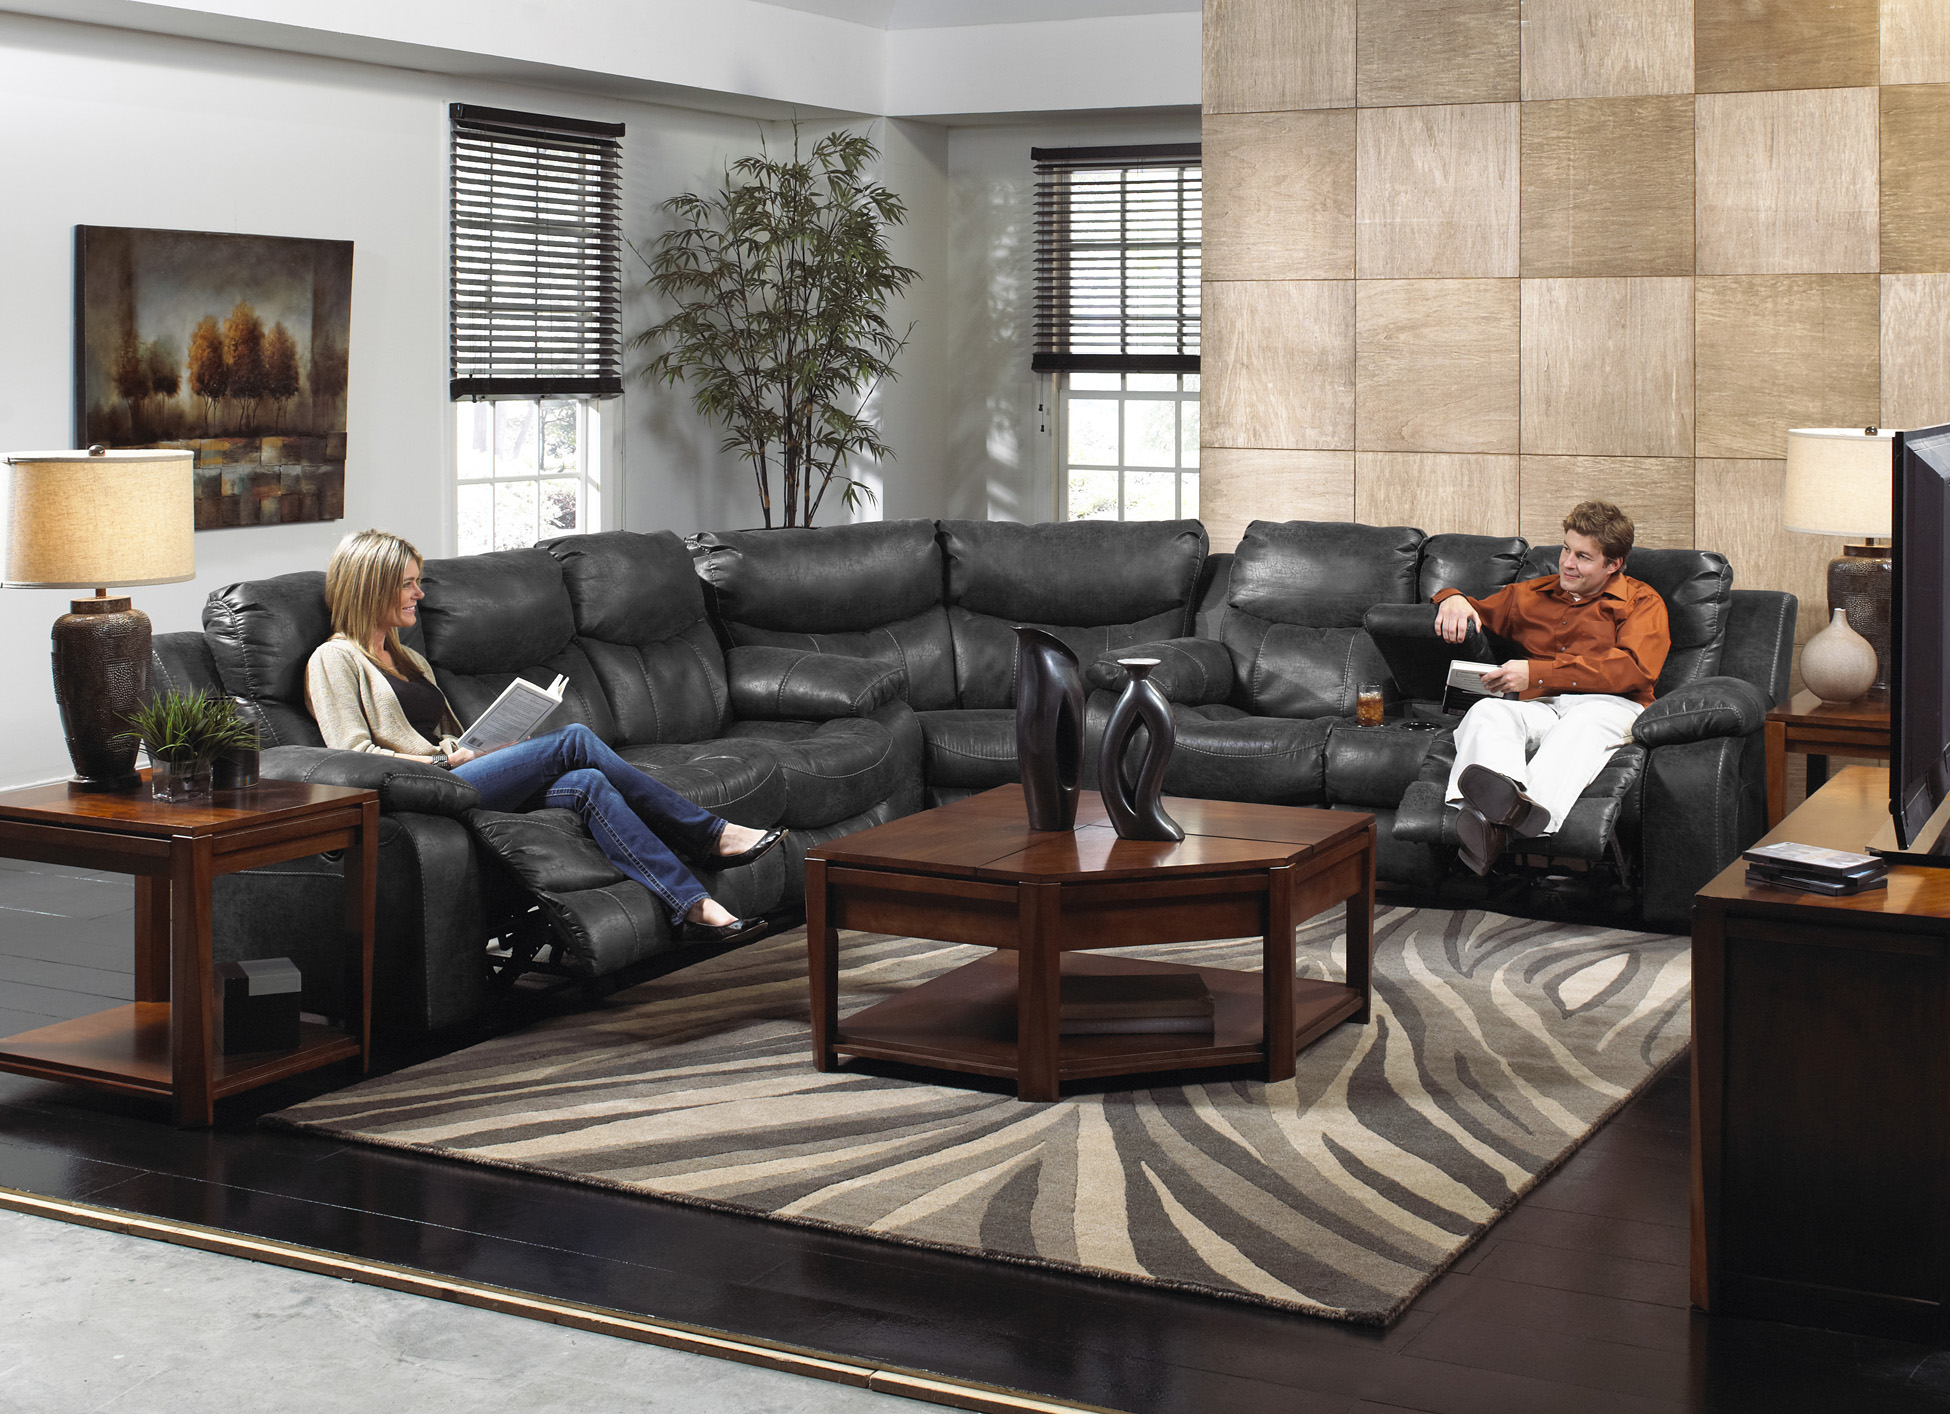 catnapper catalina reclining leather sectional sofa set 3pc